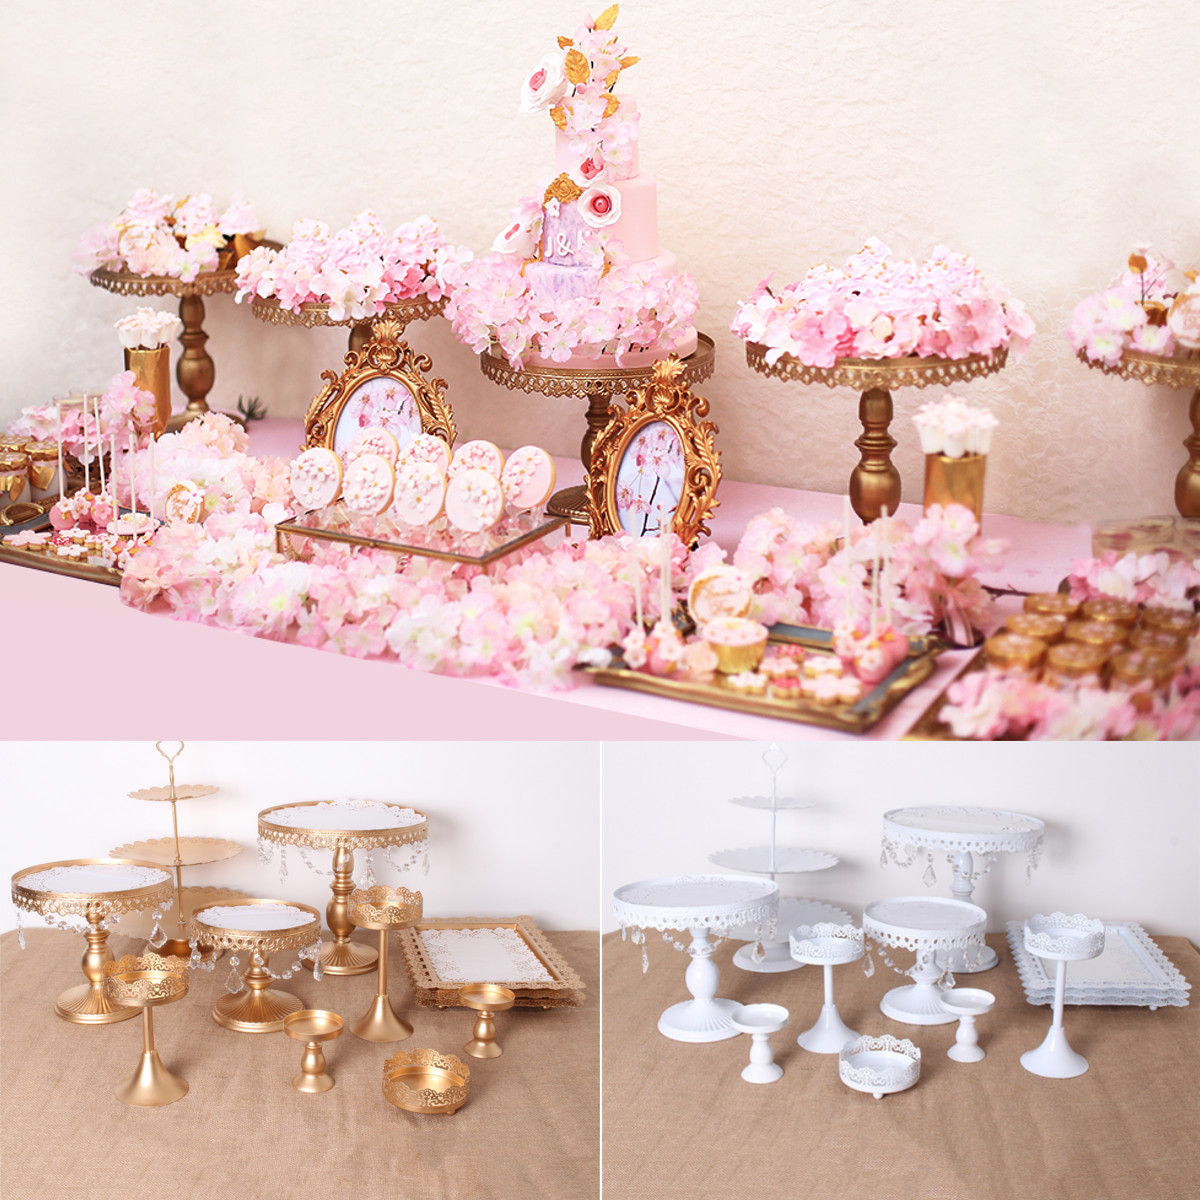 12Pcs Set Crystal Metal Cake Holder Cupcake Stand Birthday Wedding Party Display